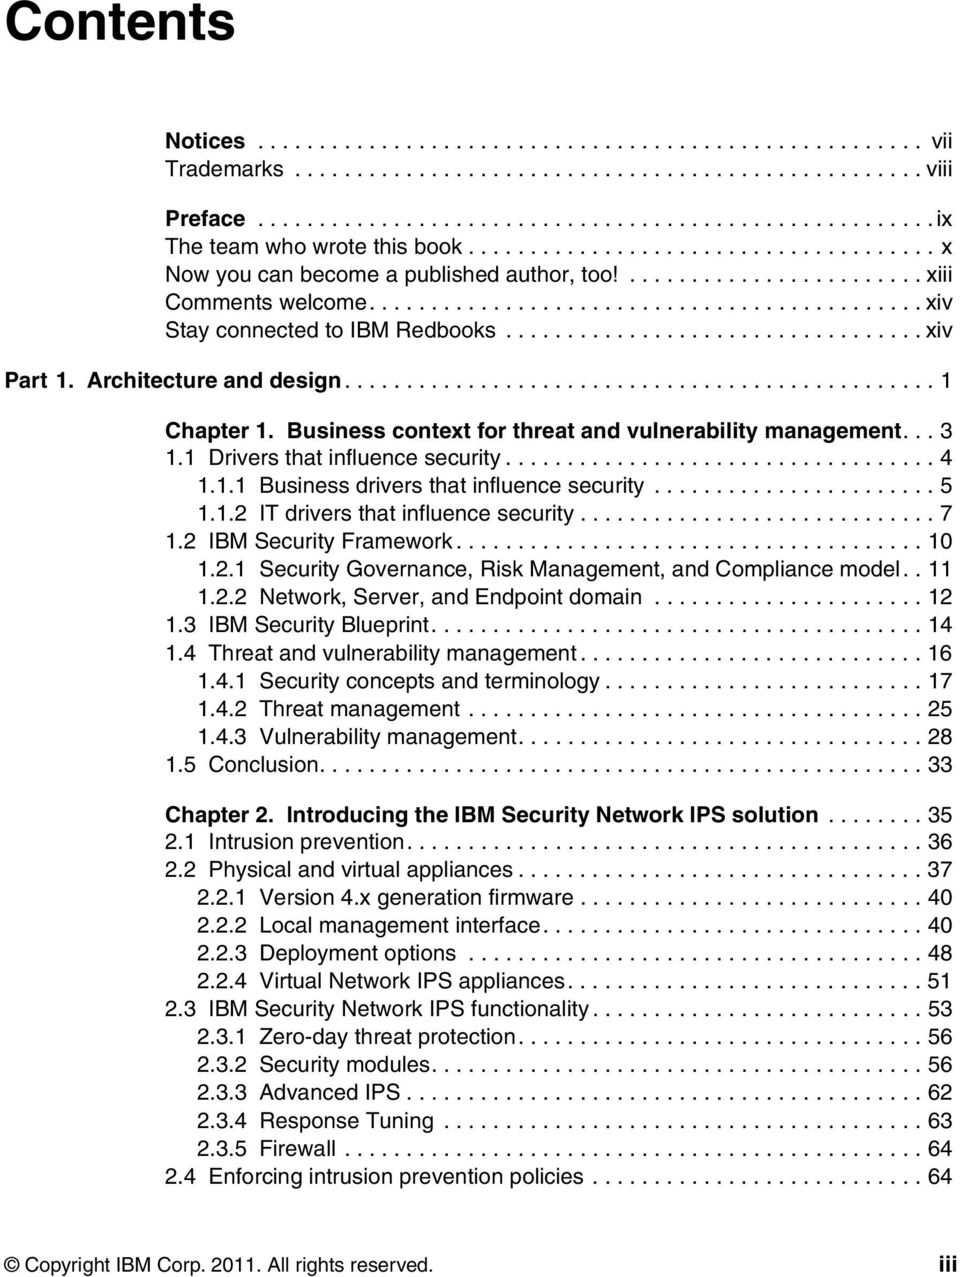 ................................. xiv Part 1. Architecture and design................................................ 1 Chapter 1. Business context for threat and vulnerability management... 3 1.